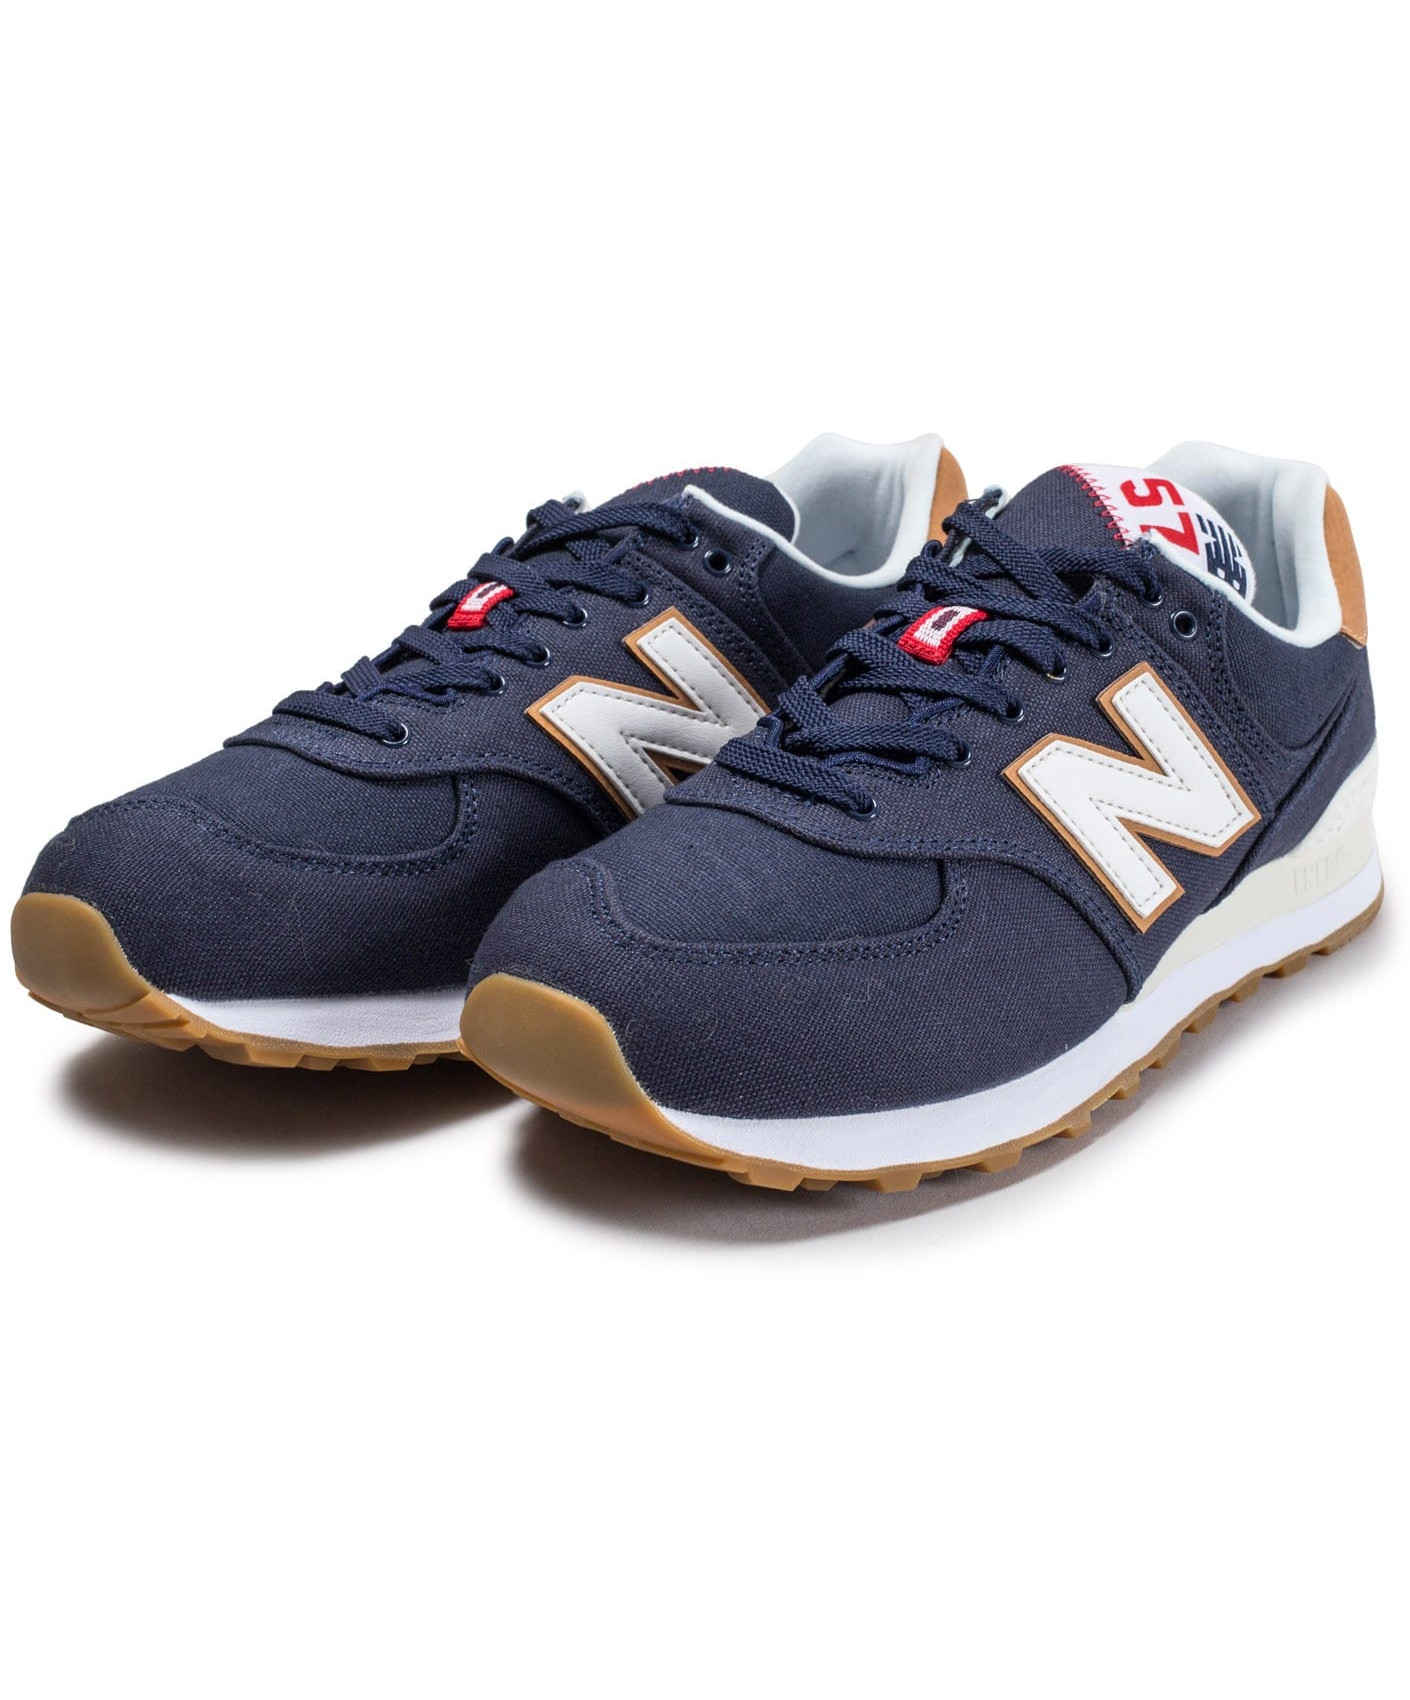 ef6ea4c443a New Balance 574 Canvas Sneakers Shoes Boots Schuhe Sport Lifestyle ...